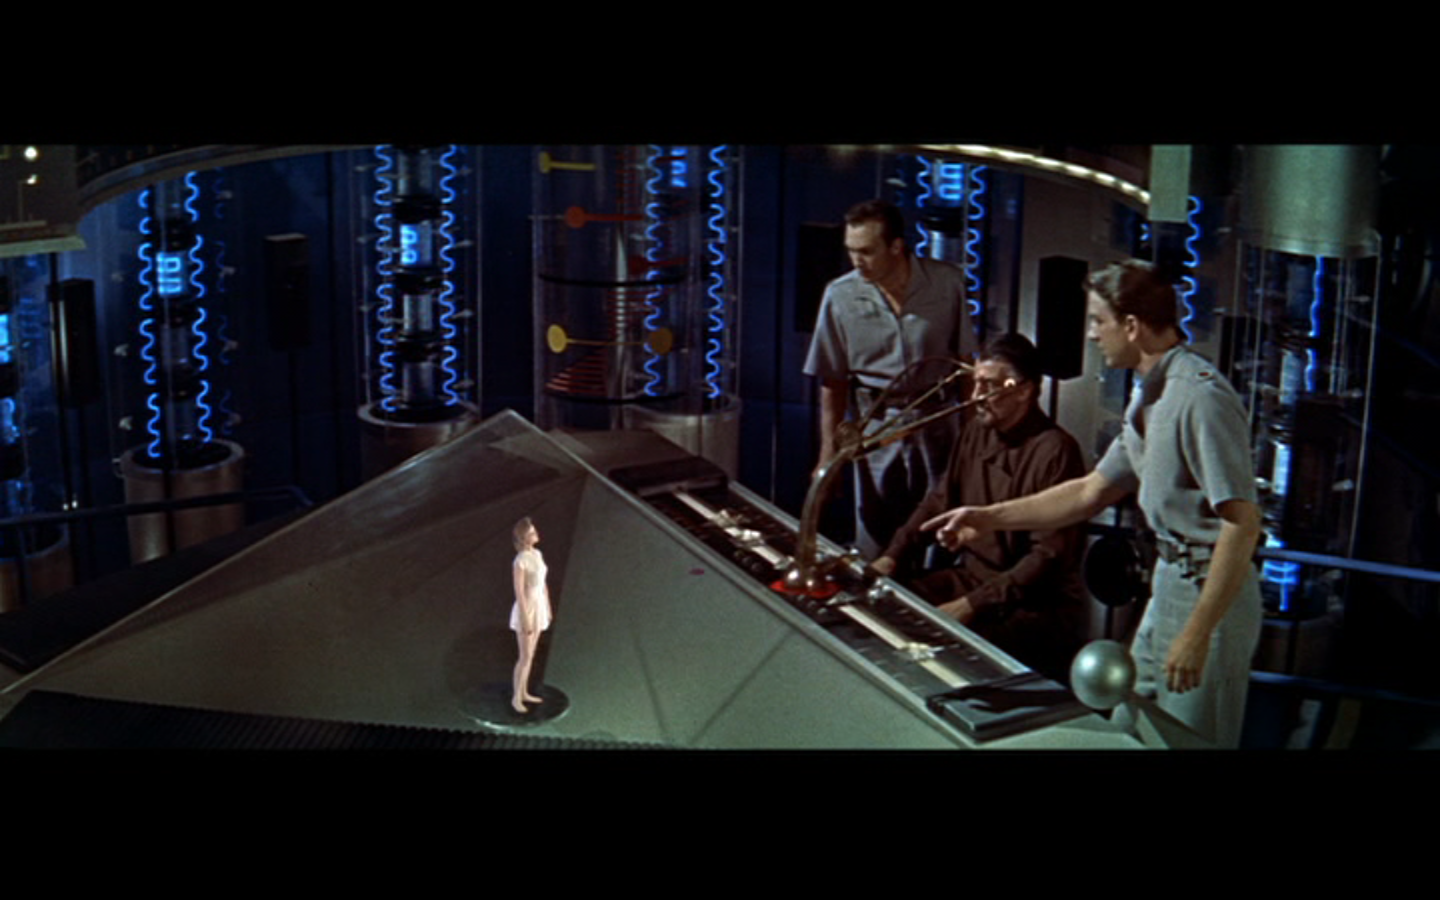 Forbidden planet (Fred McLeod Wilcox, 1956)